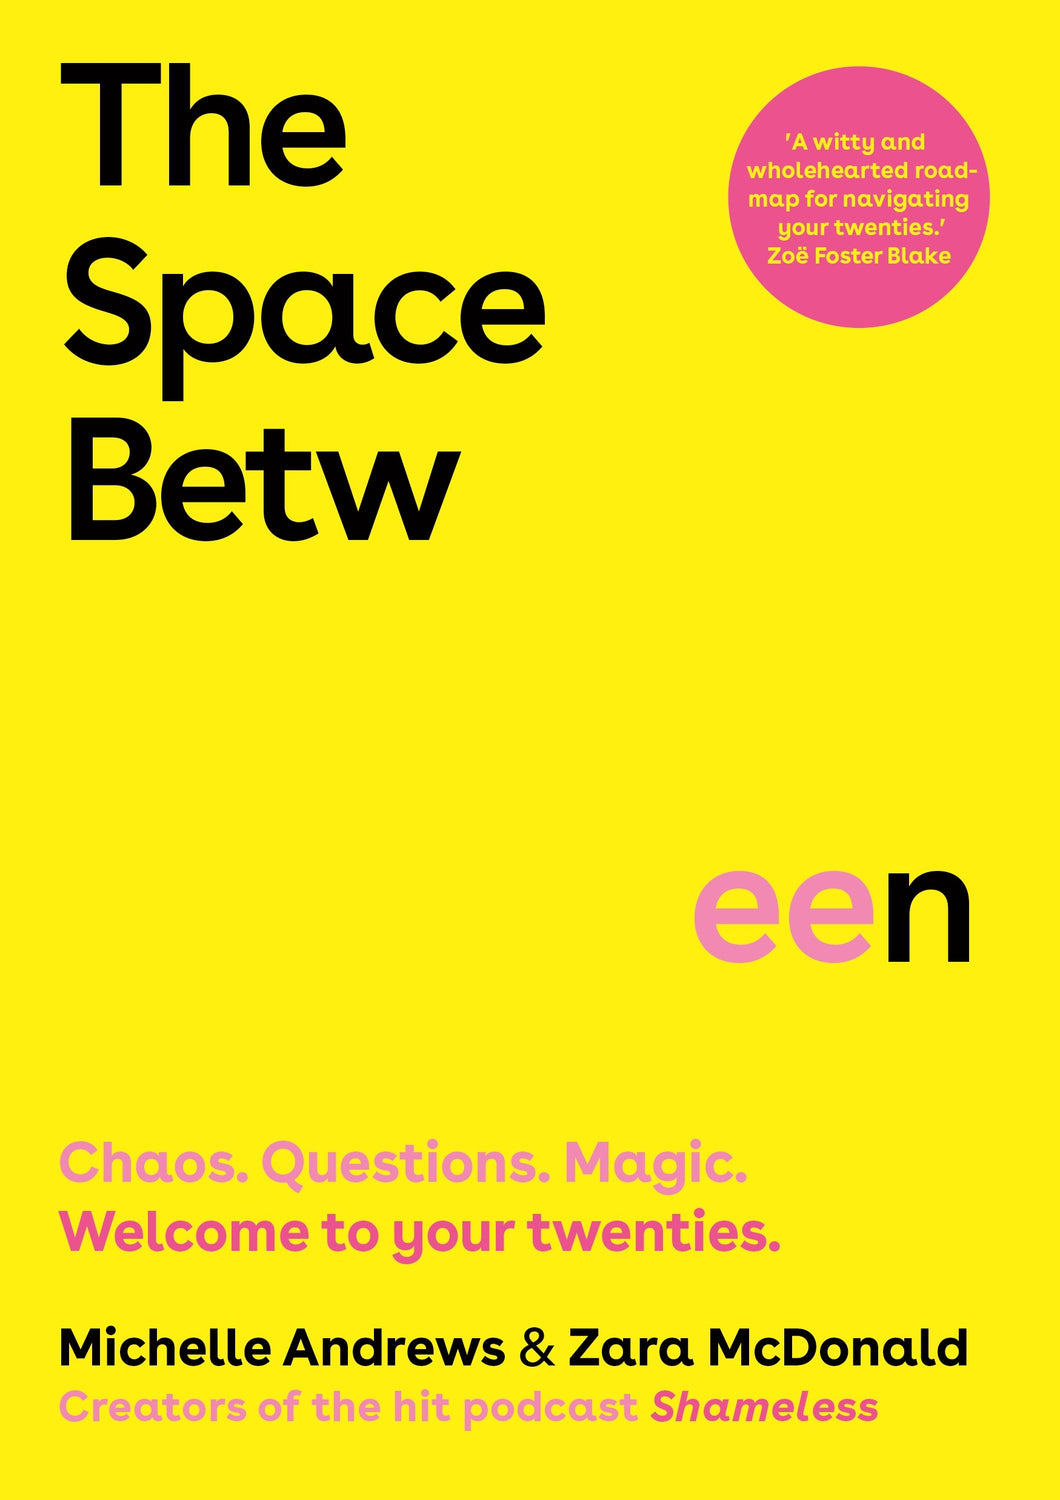 The Space Between by Zara McDonald